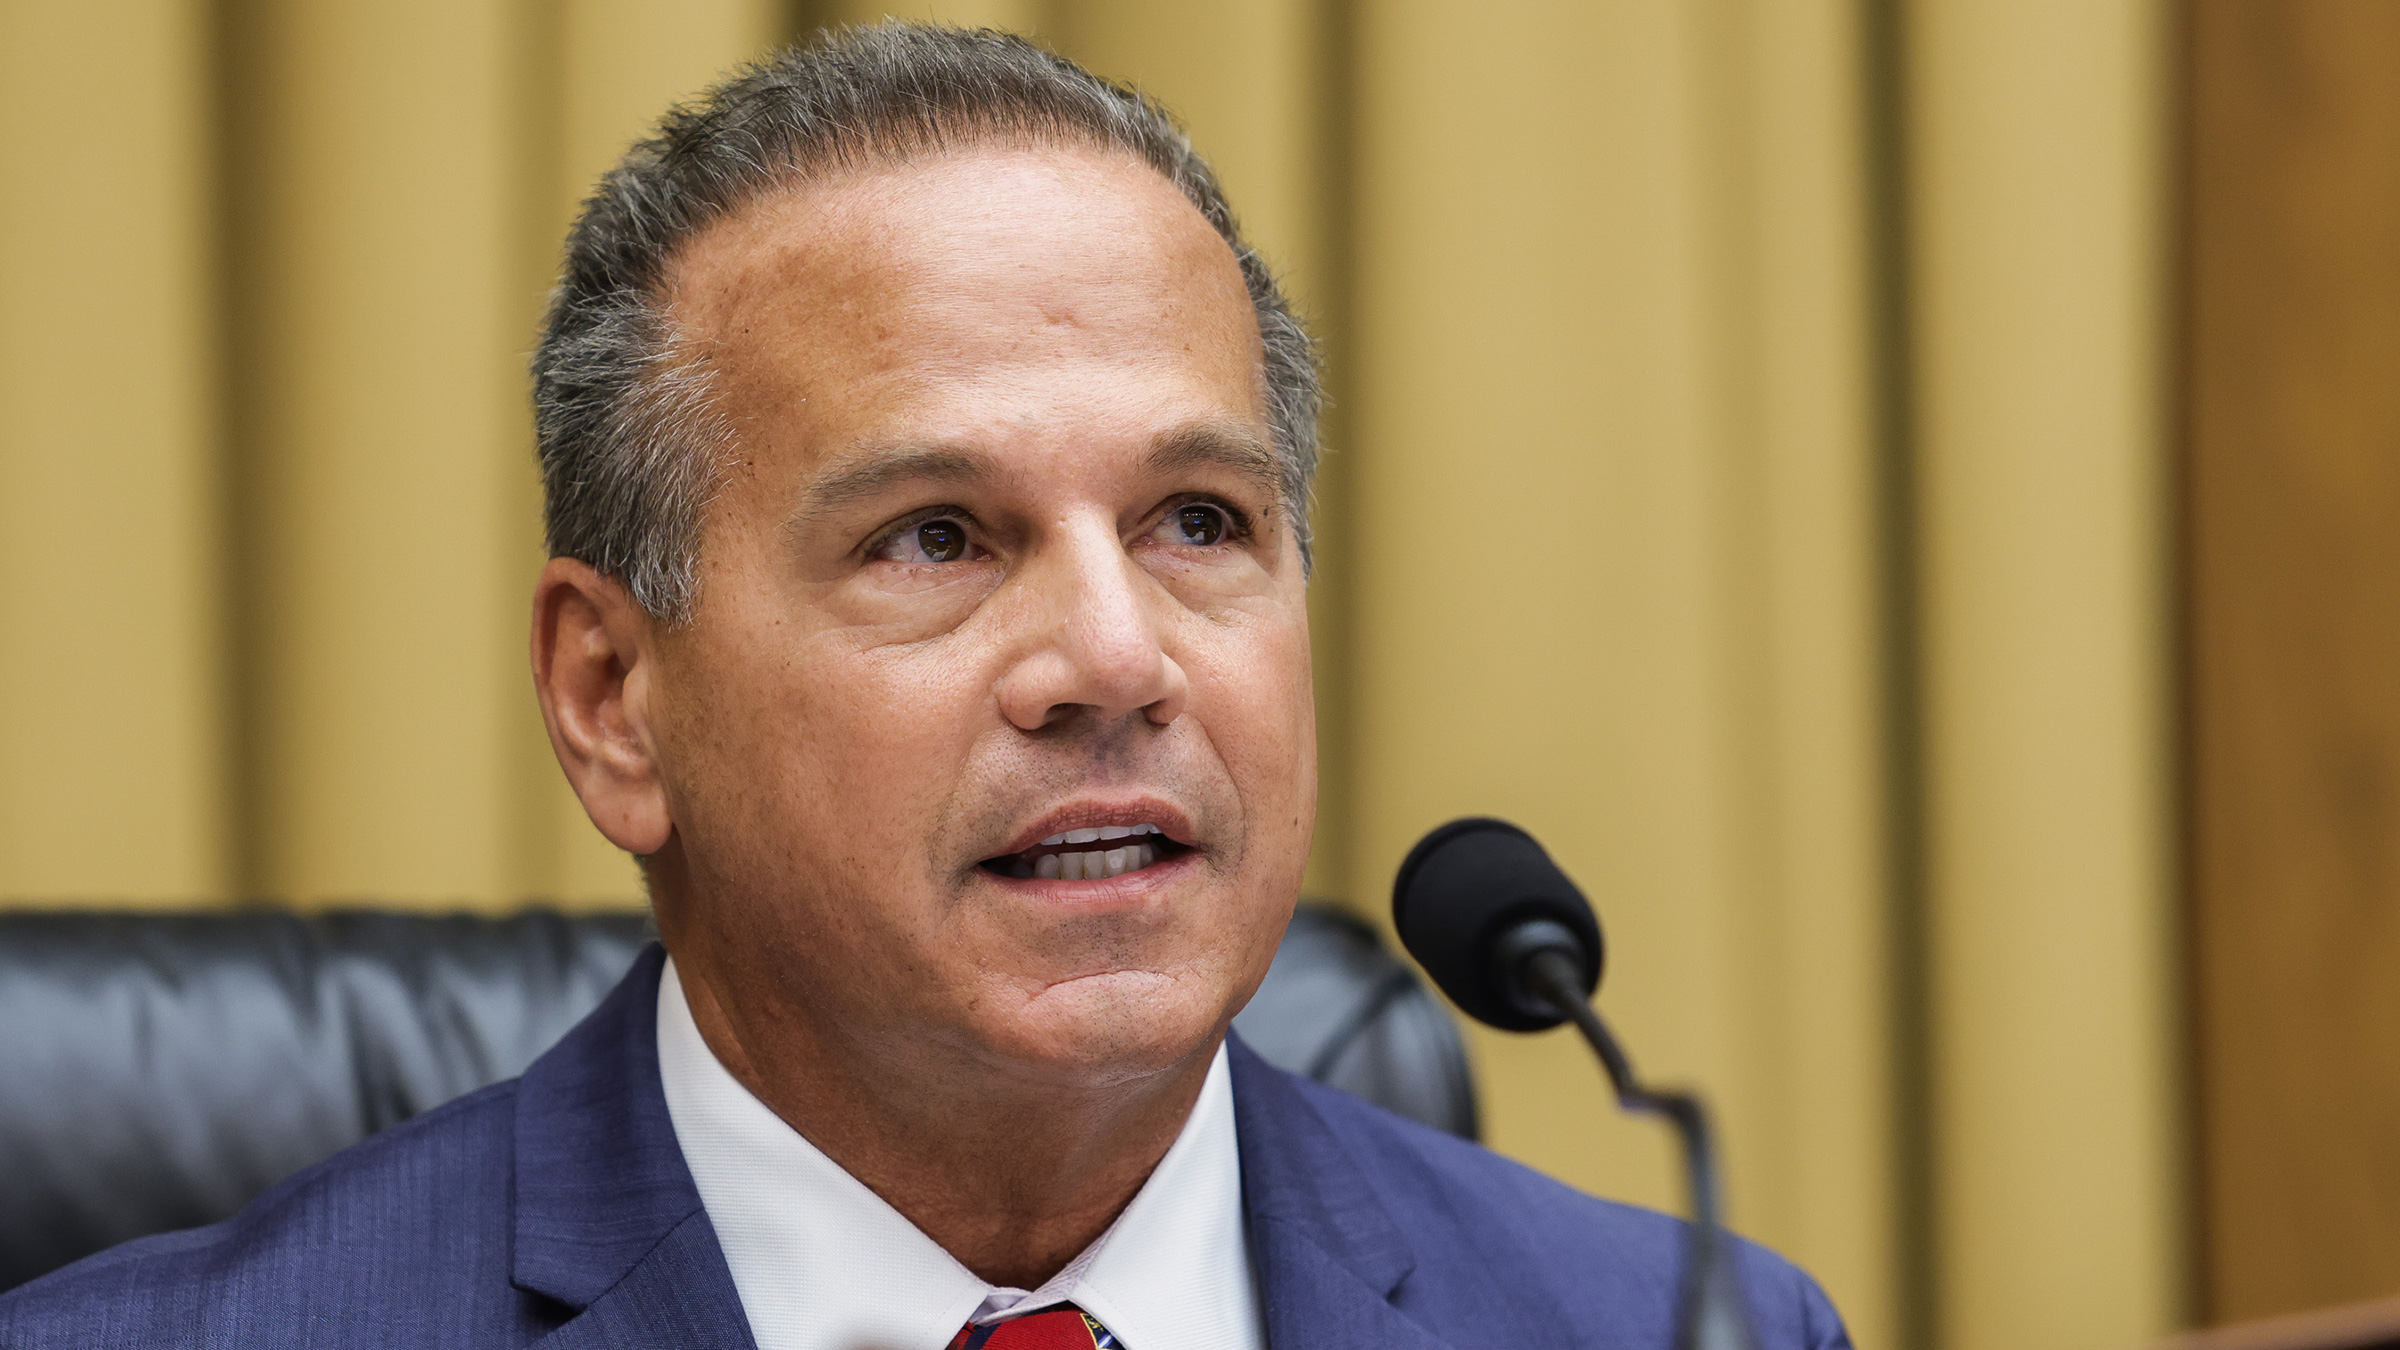 Rep. David Cicilline speaks during a House Judiciary Subcommittee hearing on July 29, 2020 in Washington, DC.